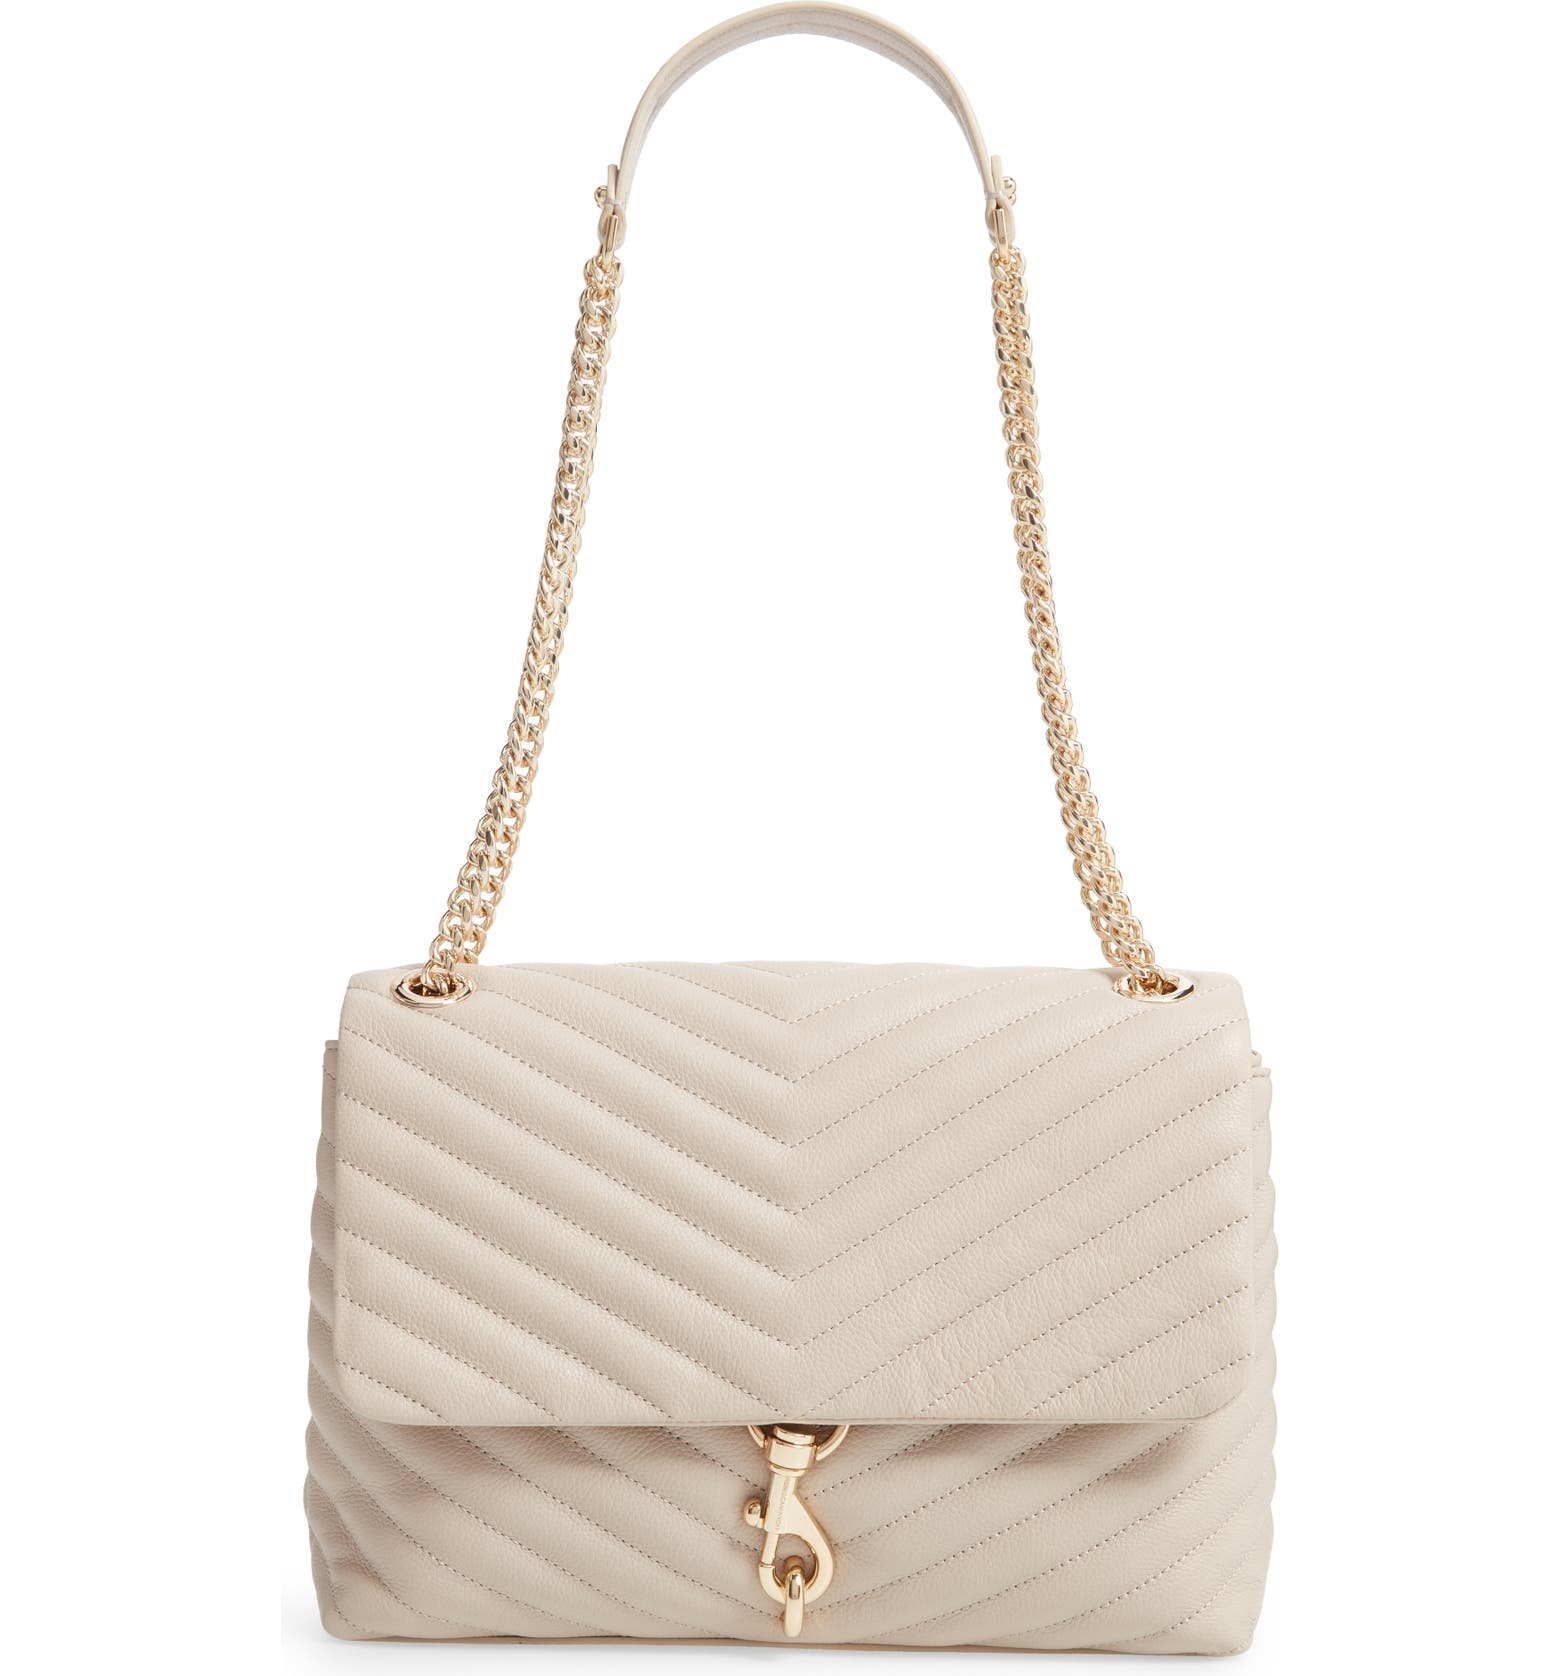 Edie Flap Quilted Leather Shoulder Bag REBECCA MINKOFF